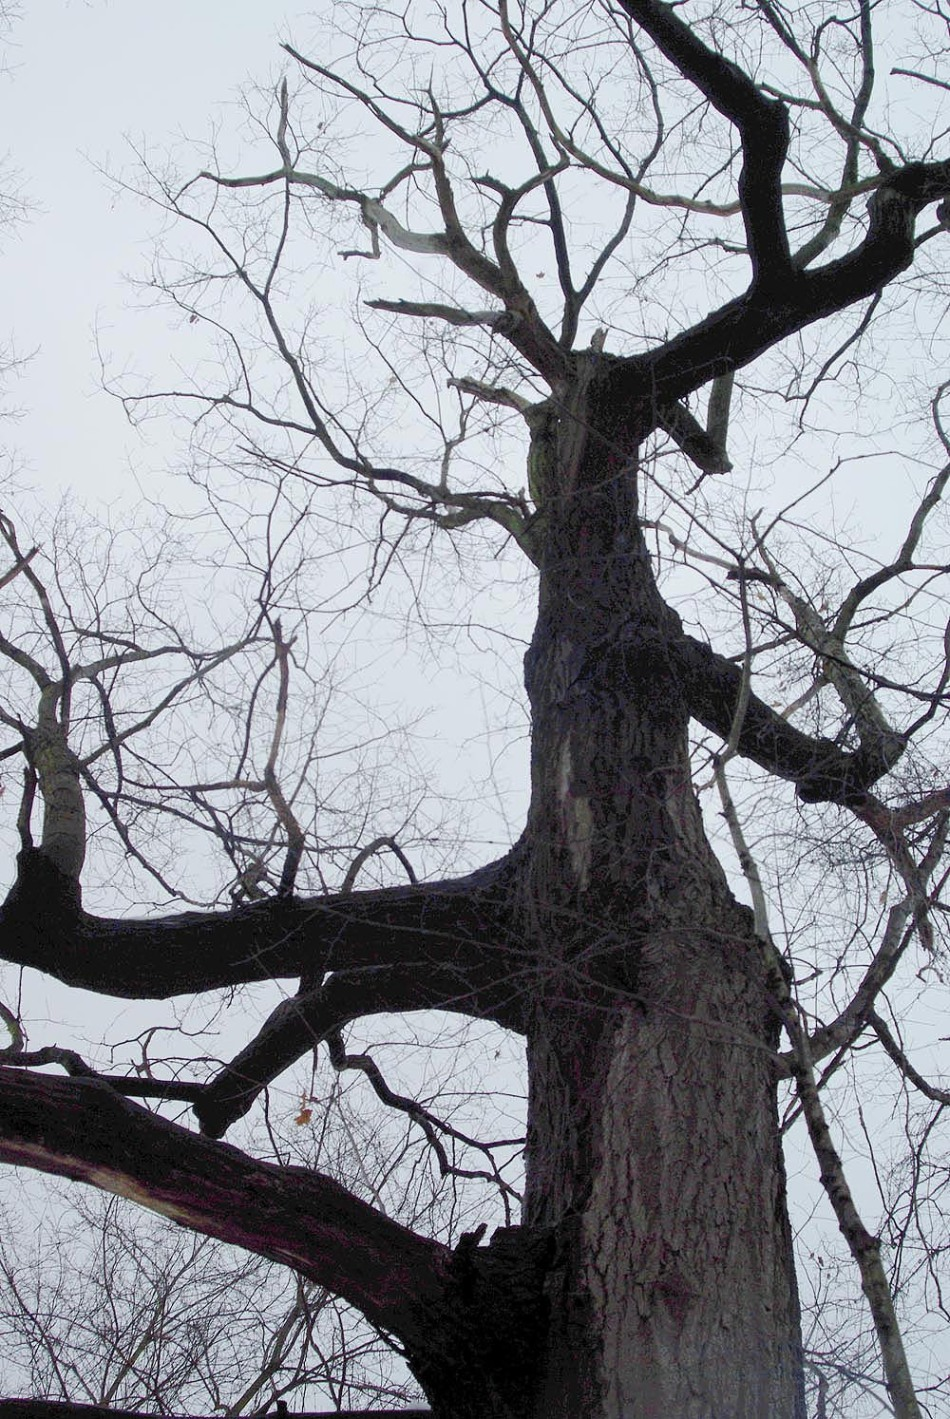 The Red Oak Tree lifts its craggy old arms to a gray winter sky.